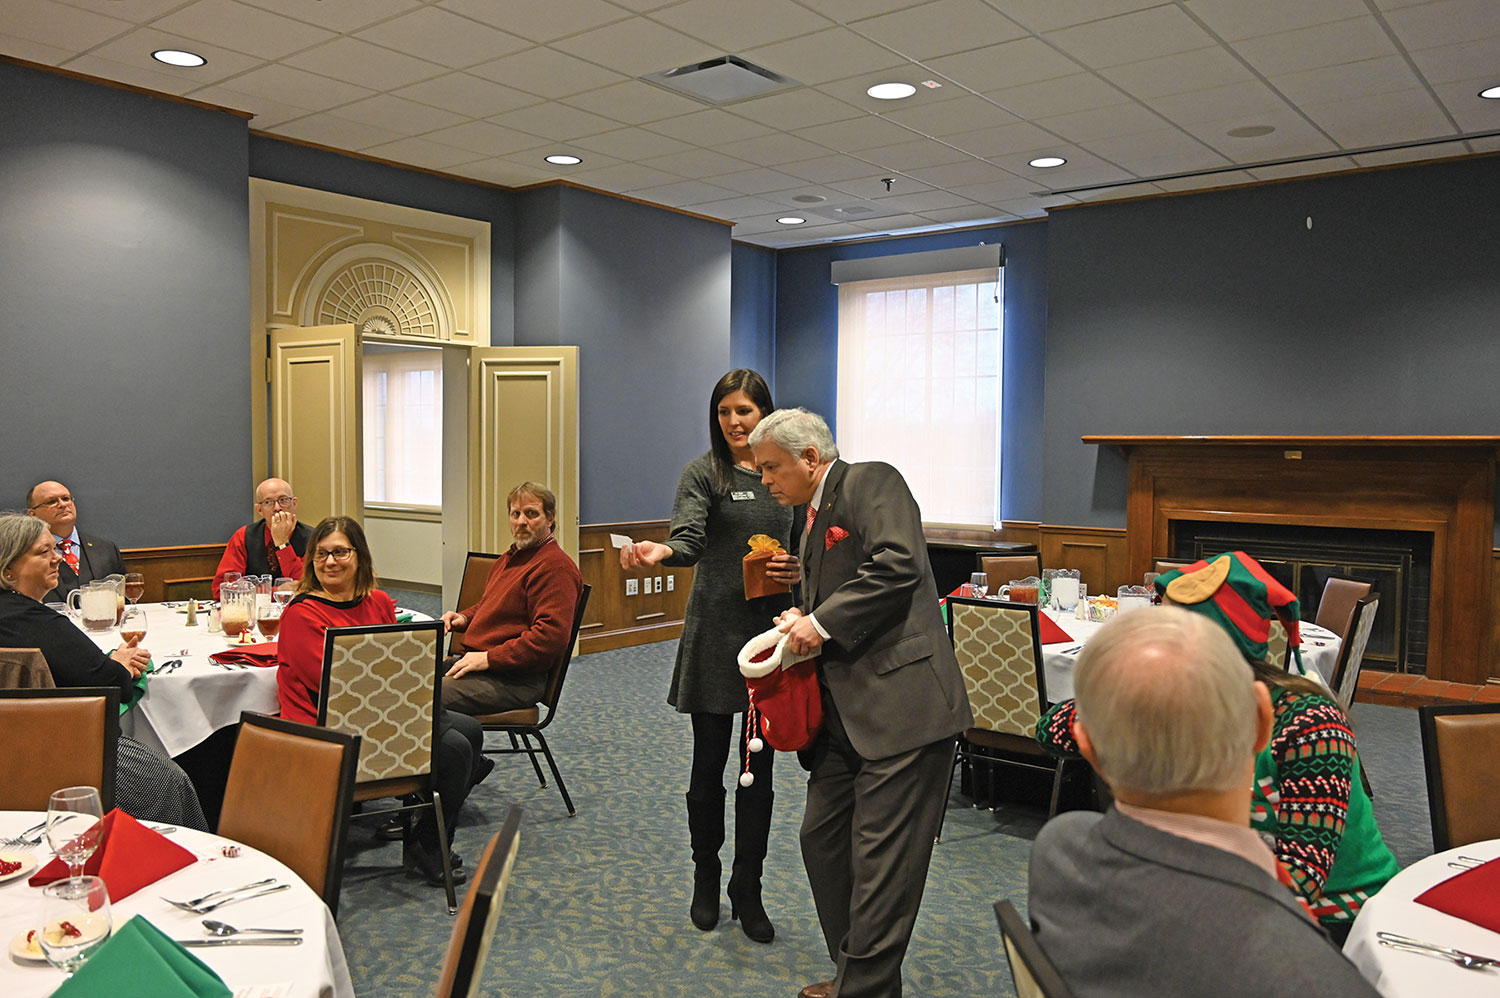 President/CEO Col. (Ret.) Rod Cox and Director of Operations Lora Morgan draw raffle tickets for Foundation holiday ornaments during the luncheon.